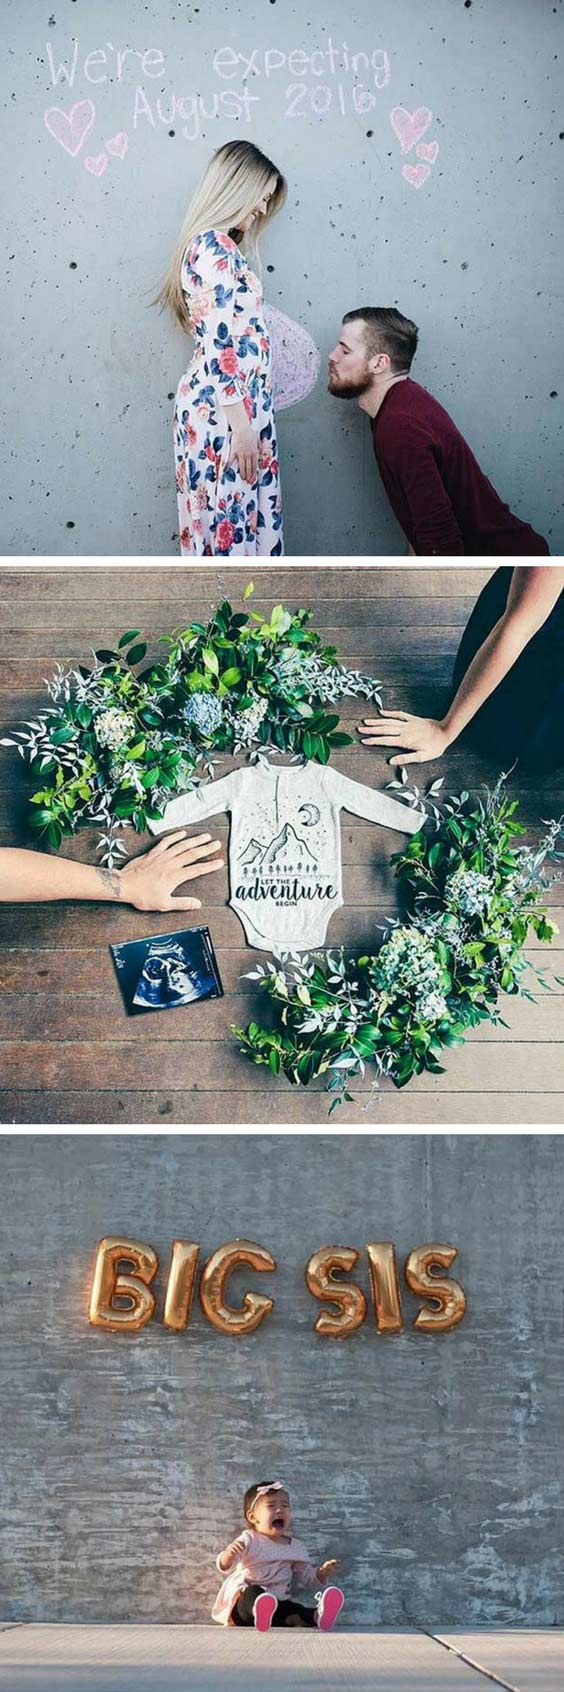 Cute Pregnancy Announcement Ideas